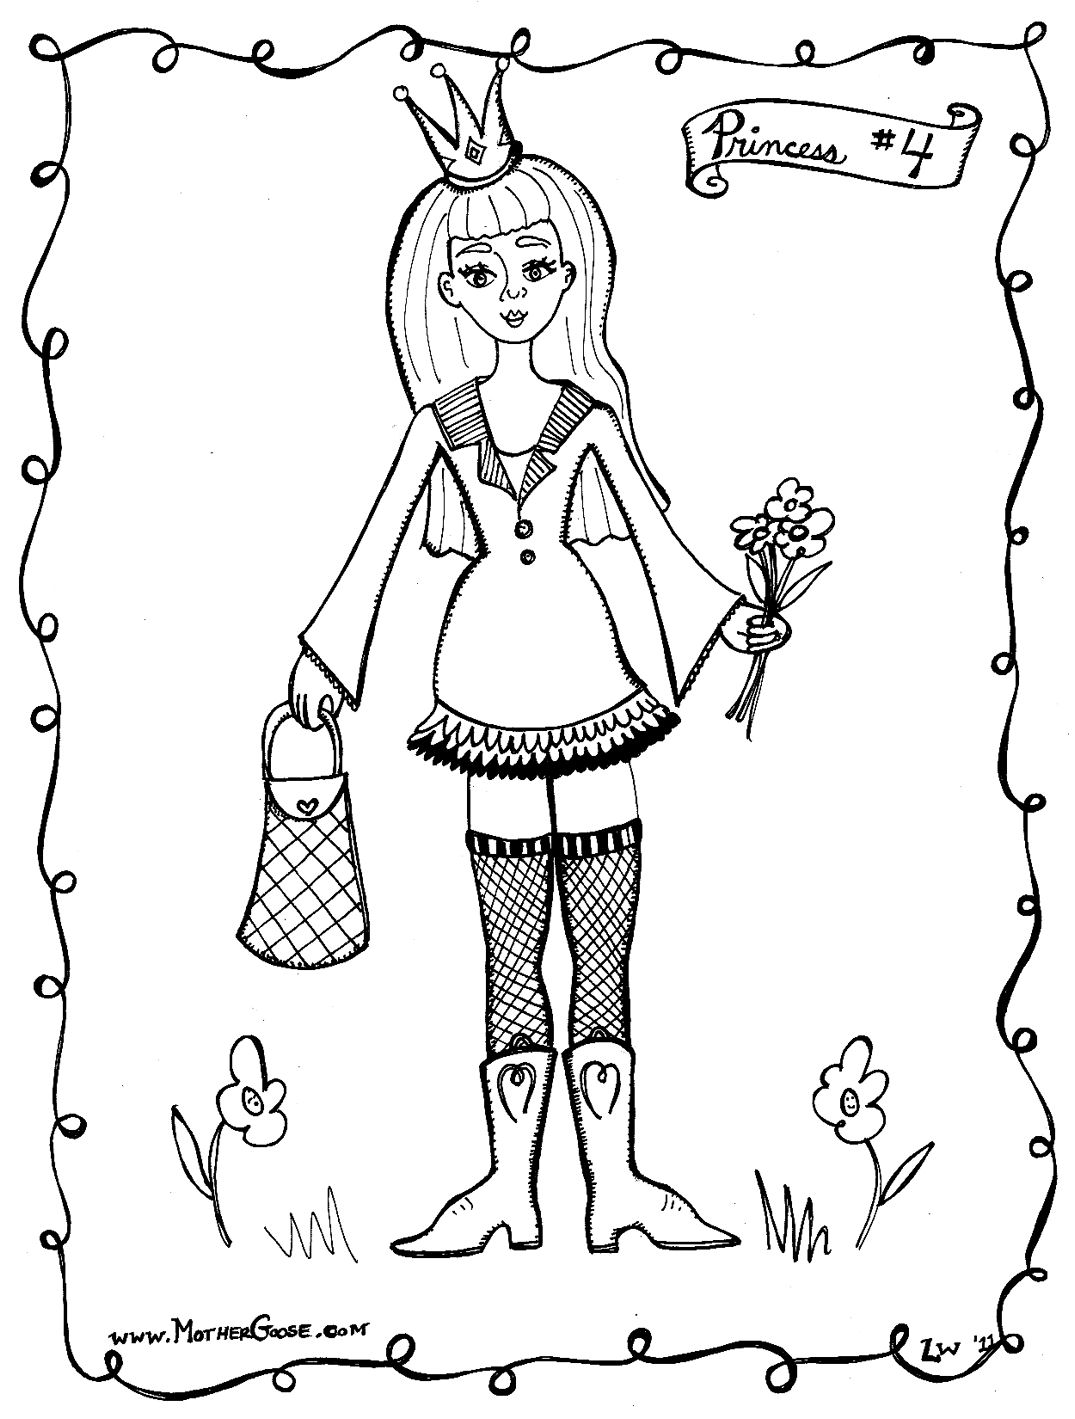 foamposite coloring pages | Foamposite Free Coloring Pages Sketch Coloring Page